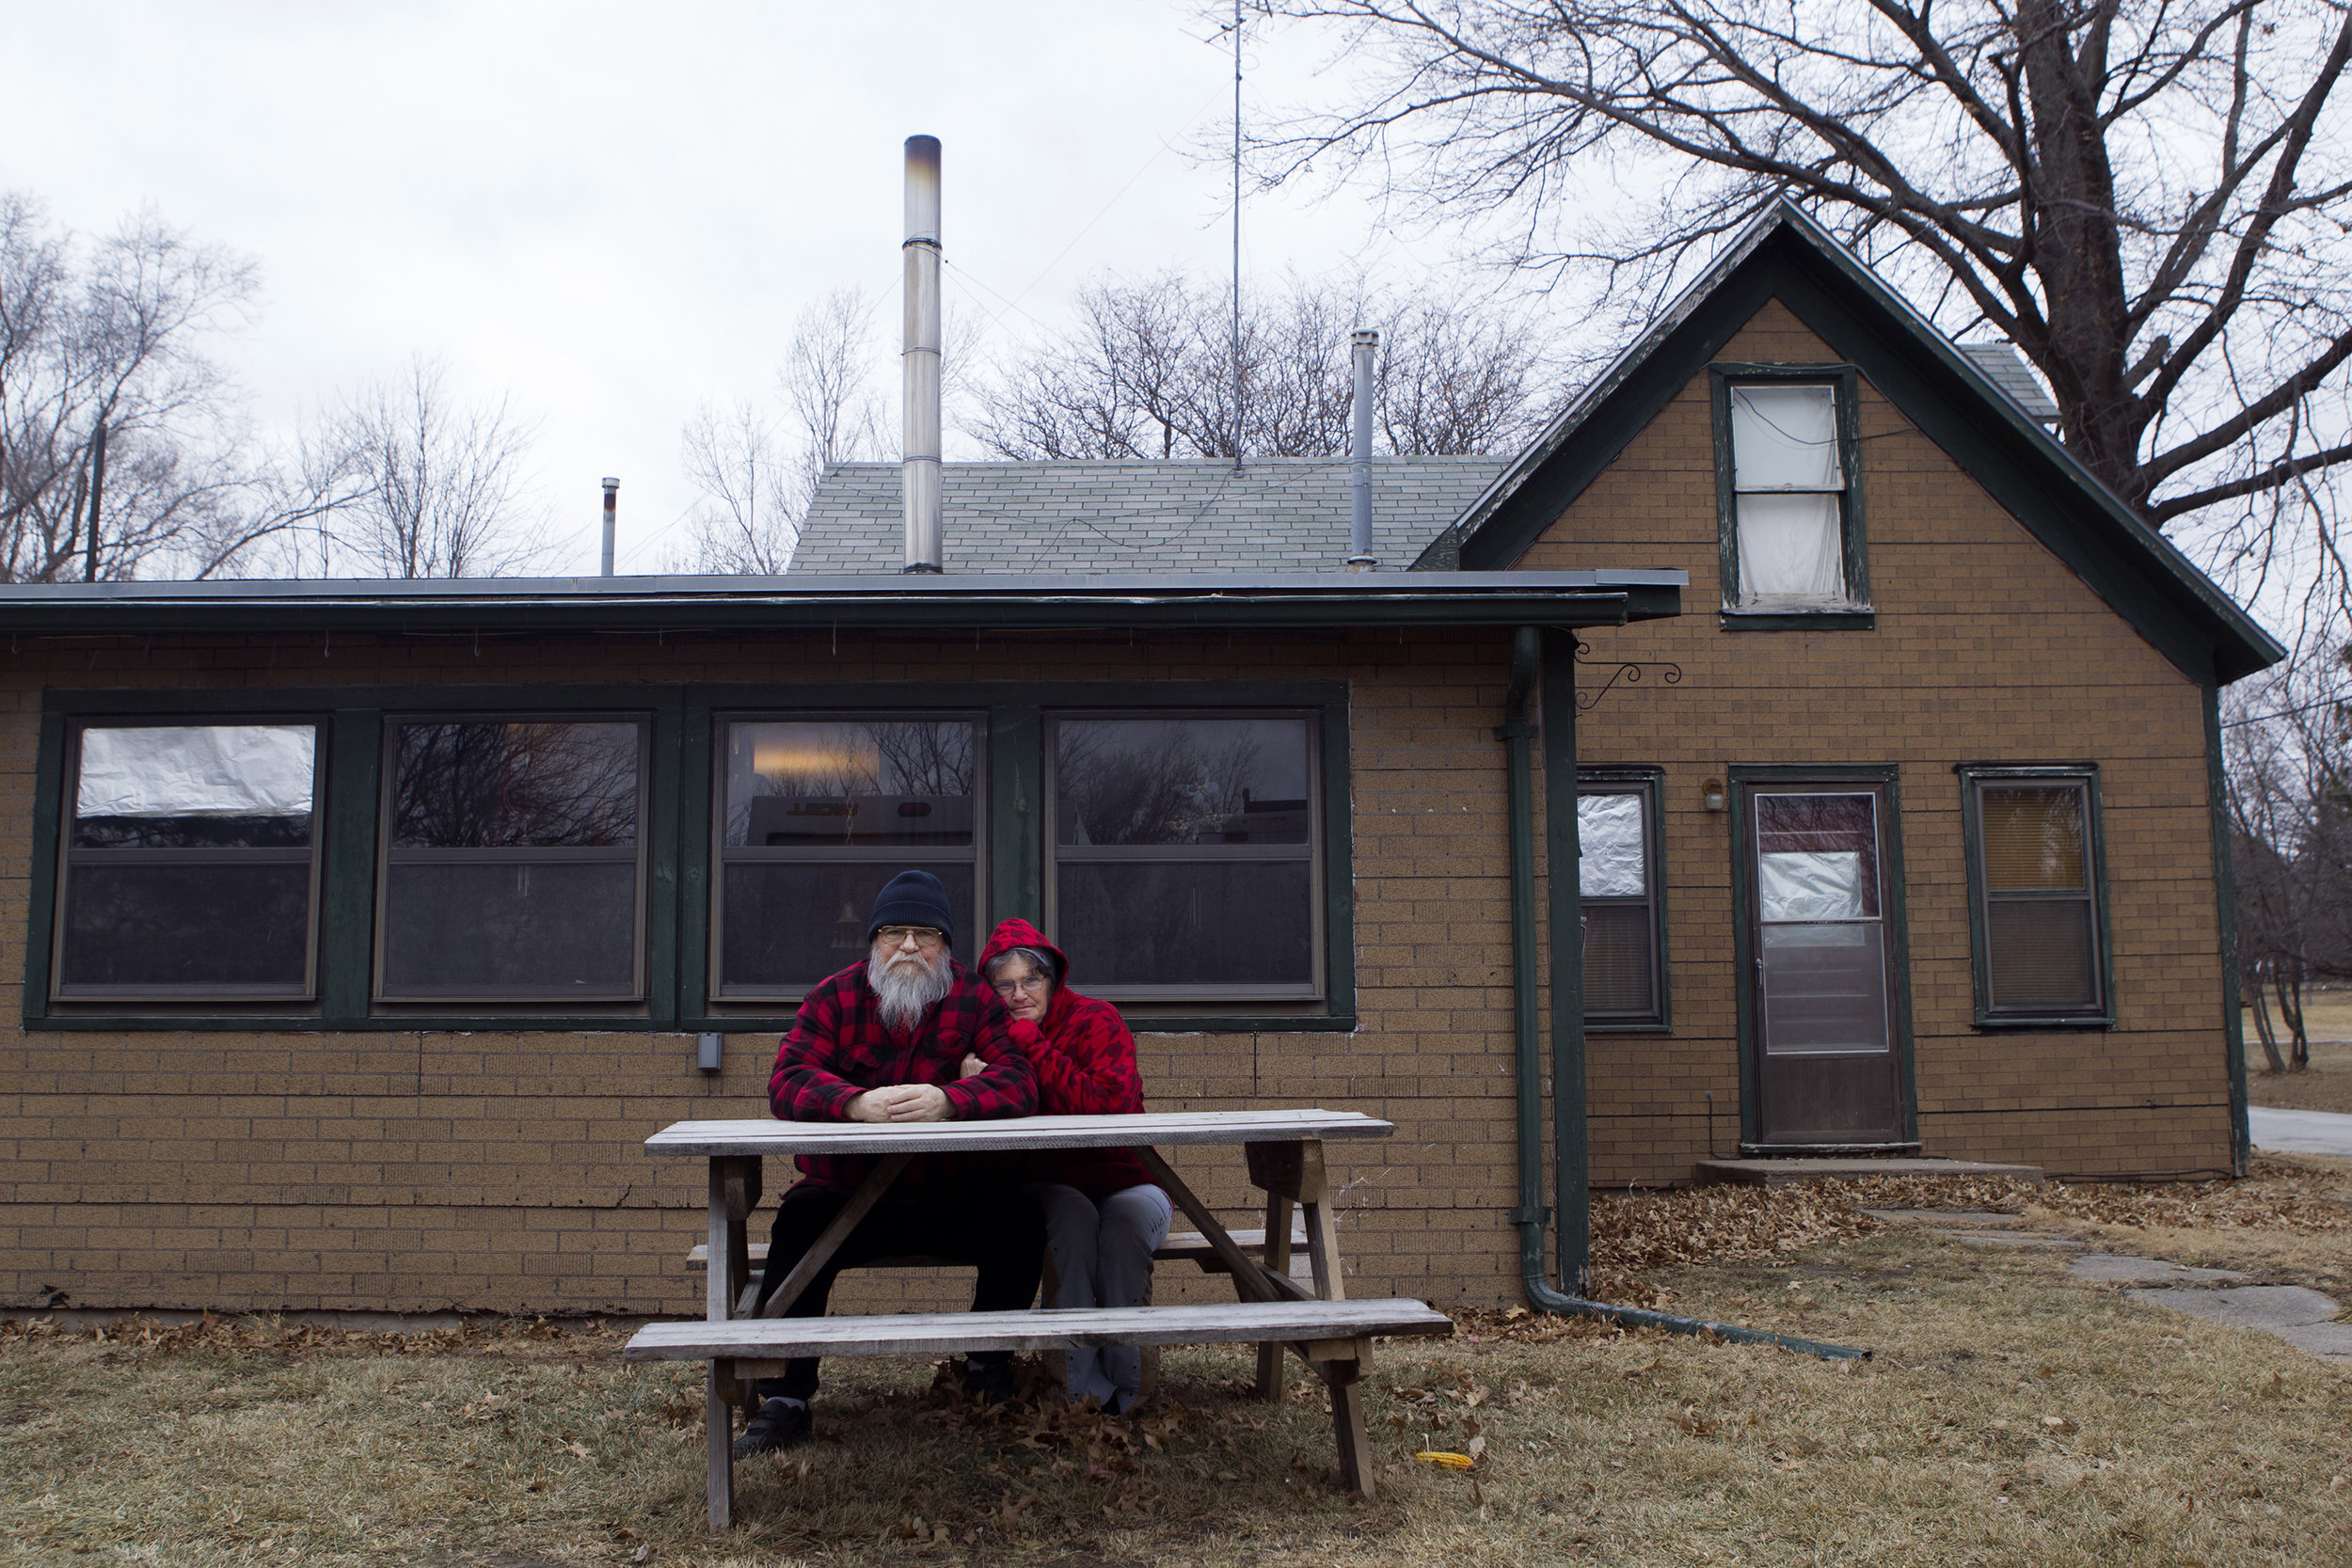 Steve and Sandy Syslo outside of their home in Douglas, Nebraska.